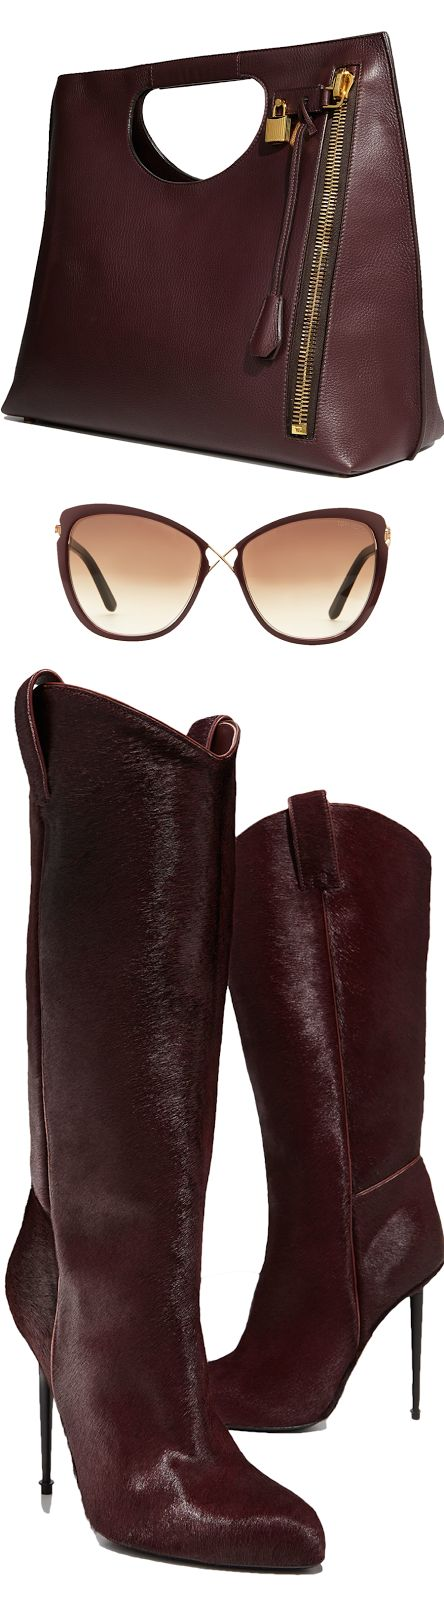 Tom Ford Merchandise ~ Calf Hair Mid-Calf Western Cut Stiletto Boot, Alix Leather Padlock and Zip Shoulder Tote Bag, Metal Cat Eye Sunglasses